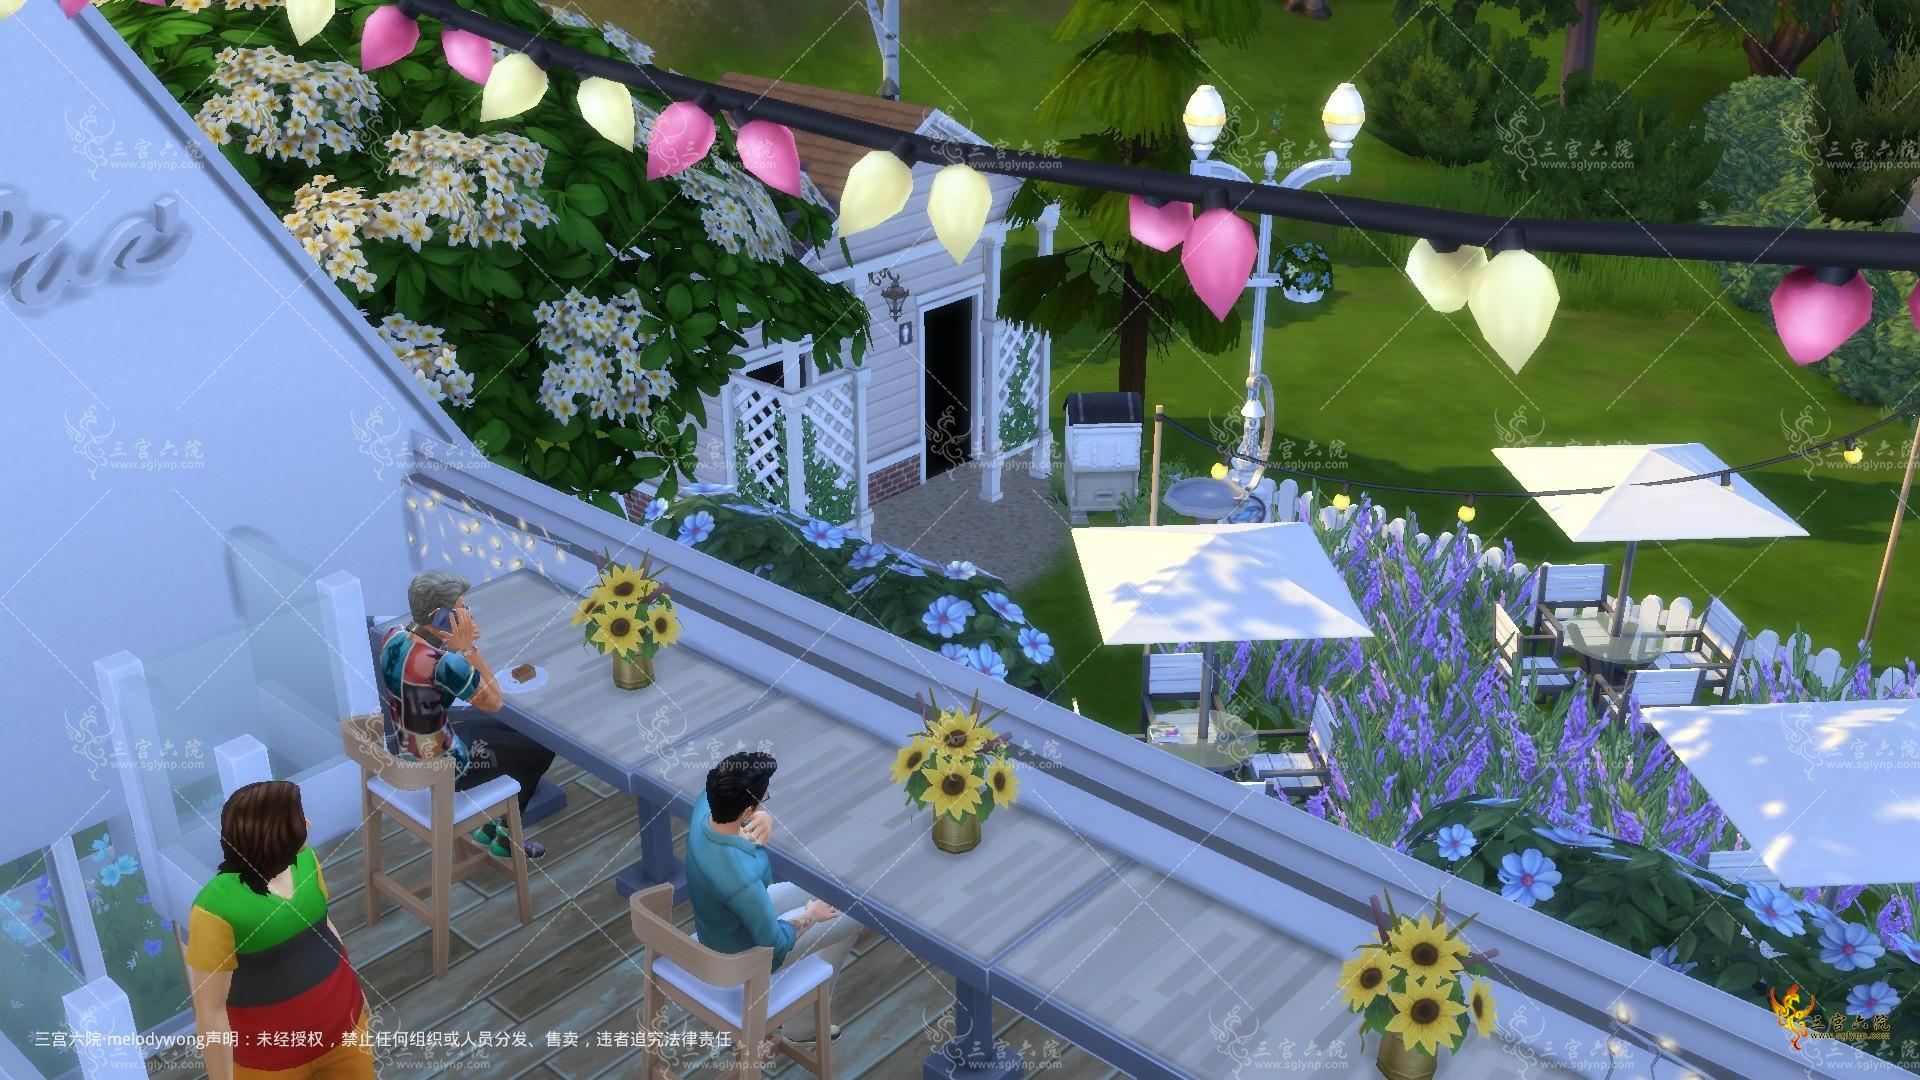 The Sims 4 2021_8_26 下午 10_02_14.png